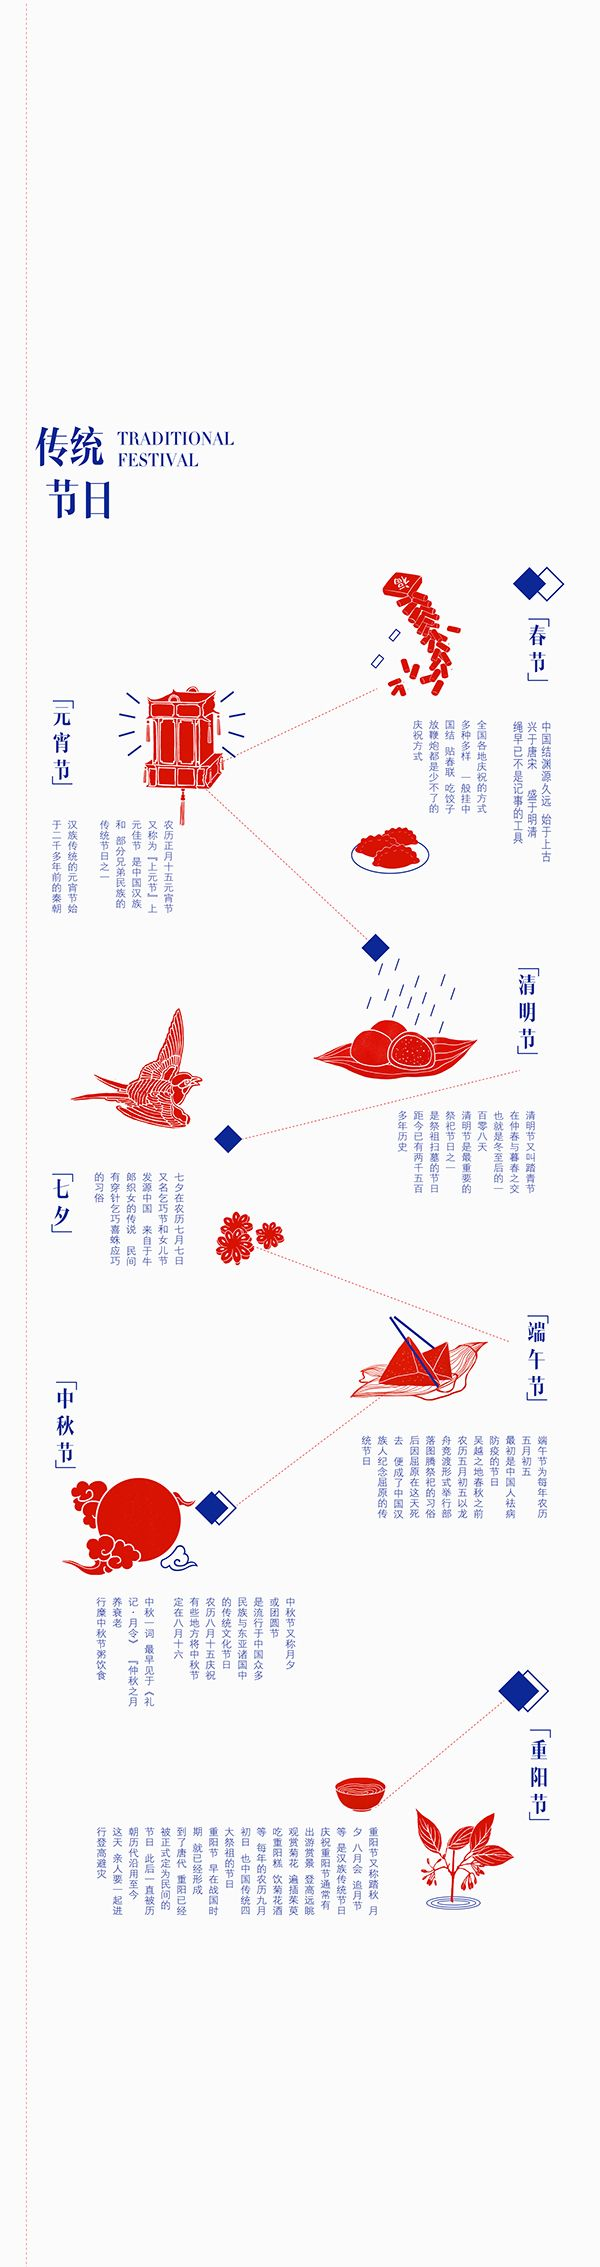 Chinese Lunar Calendar Redesign on Behance